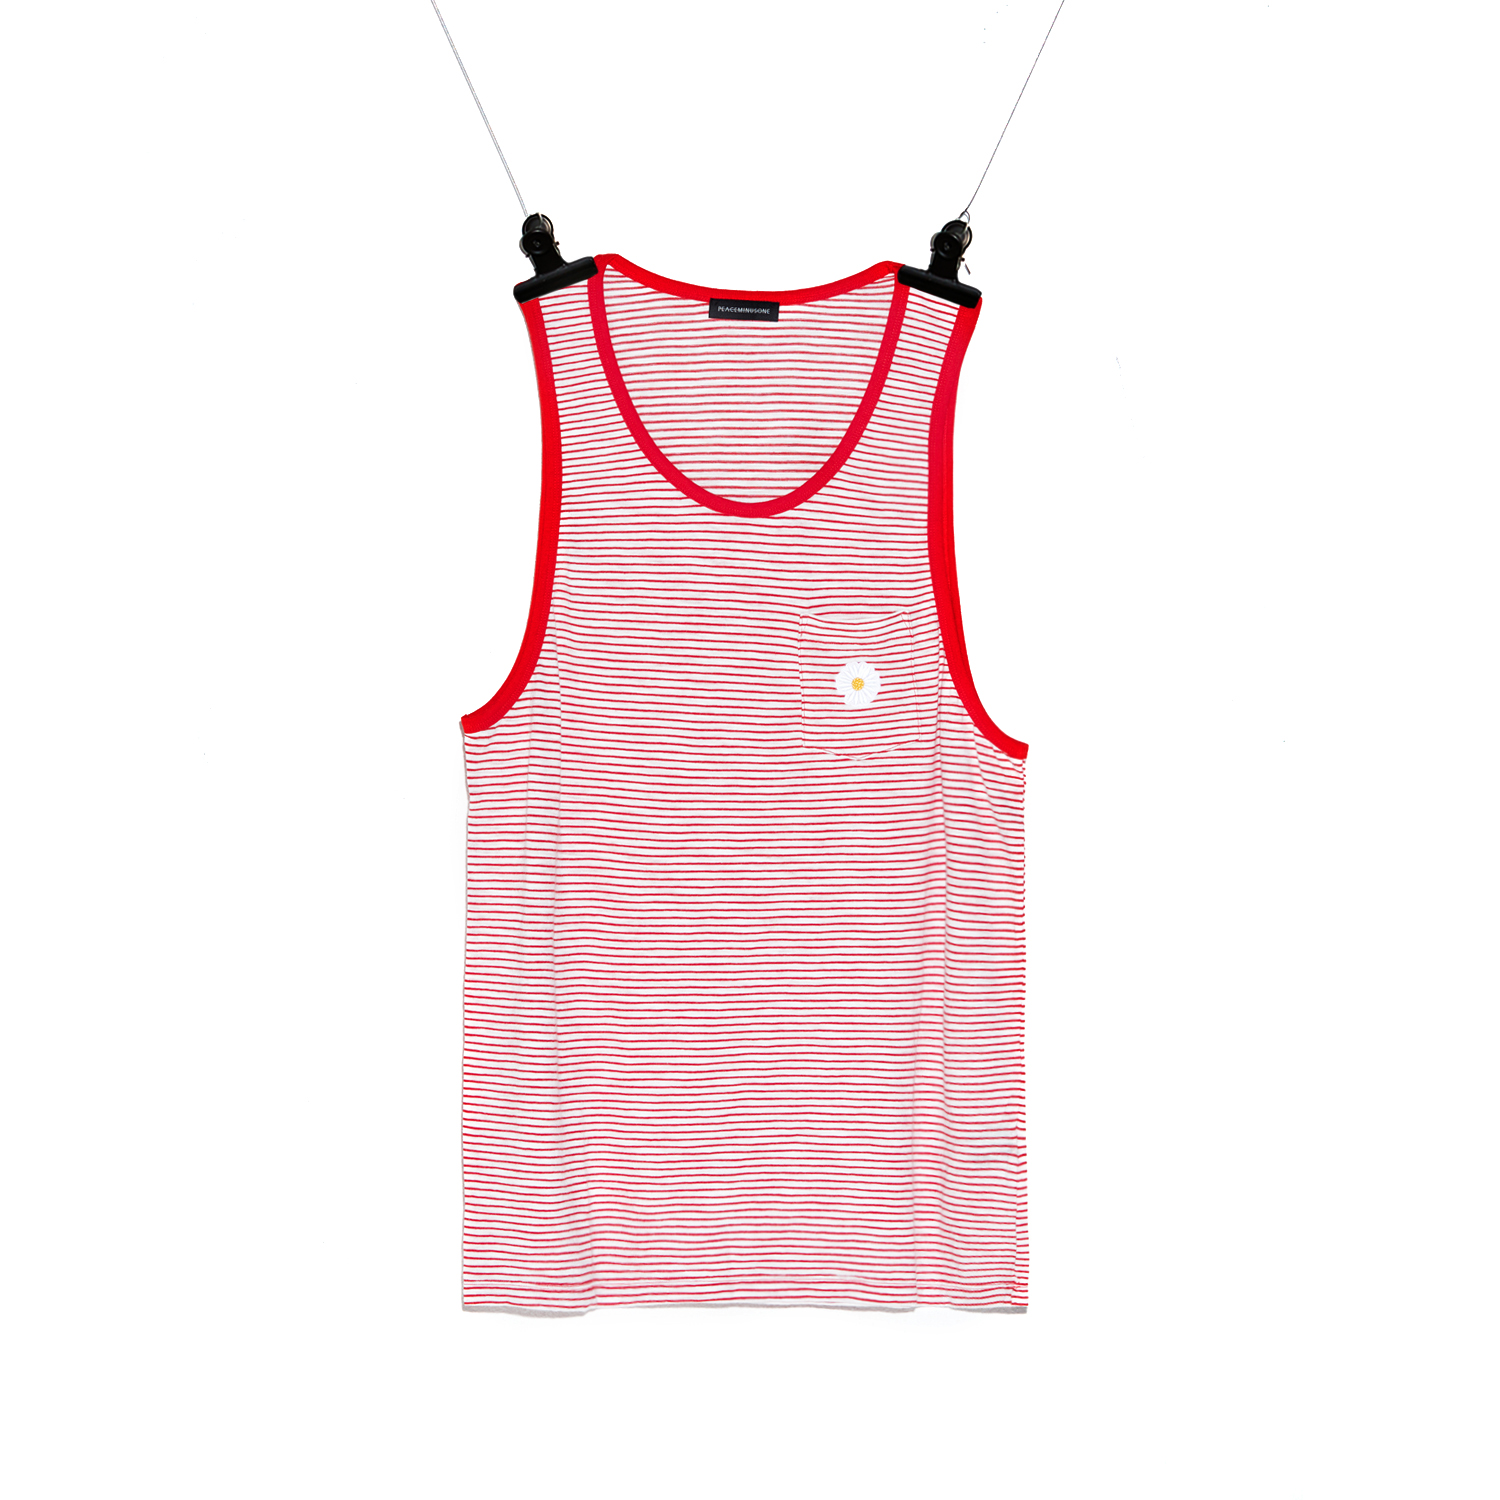 PMO TANK TOP #1 RED